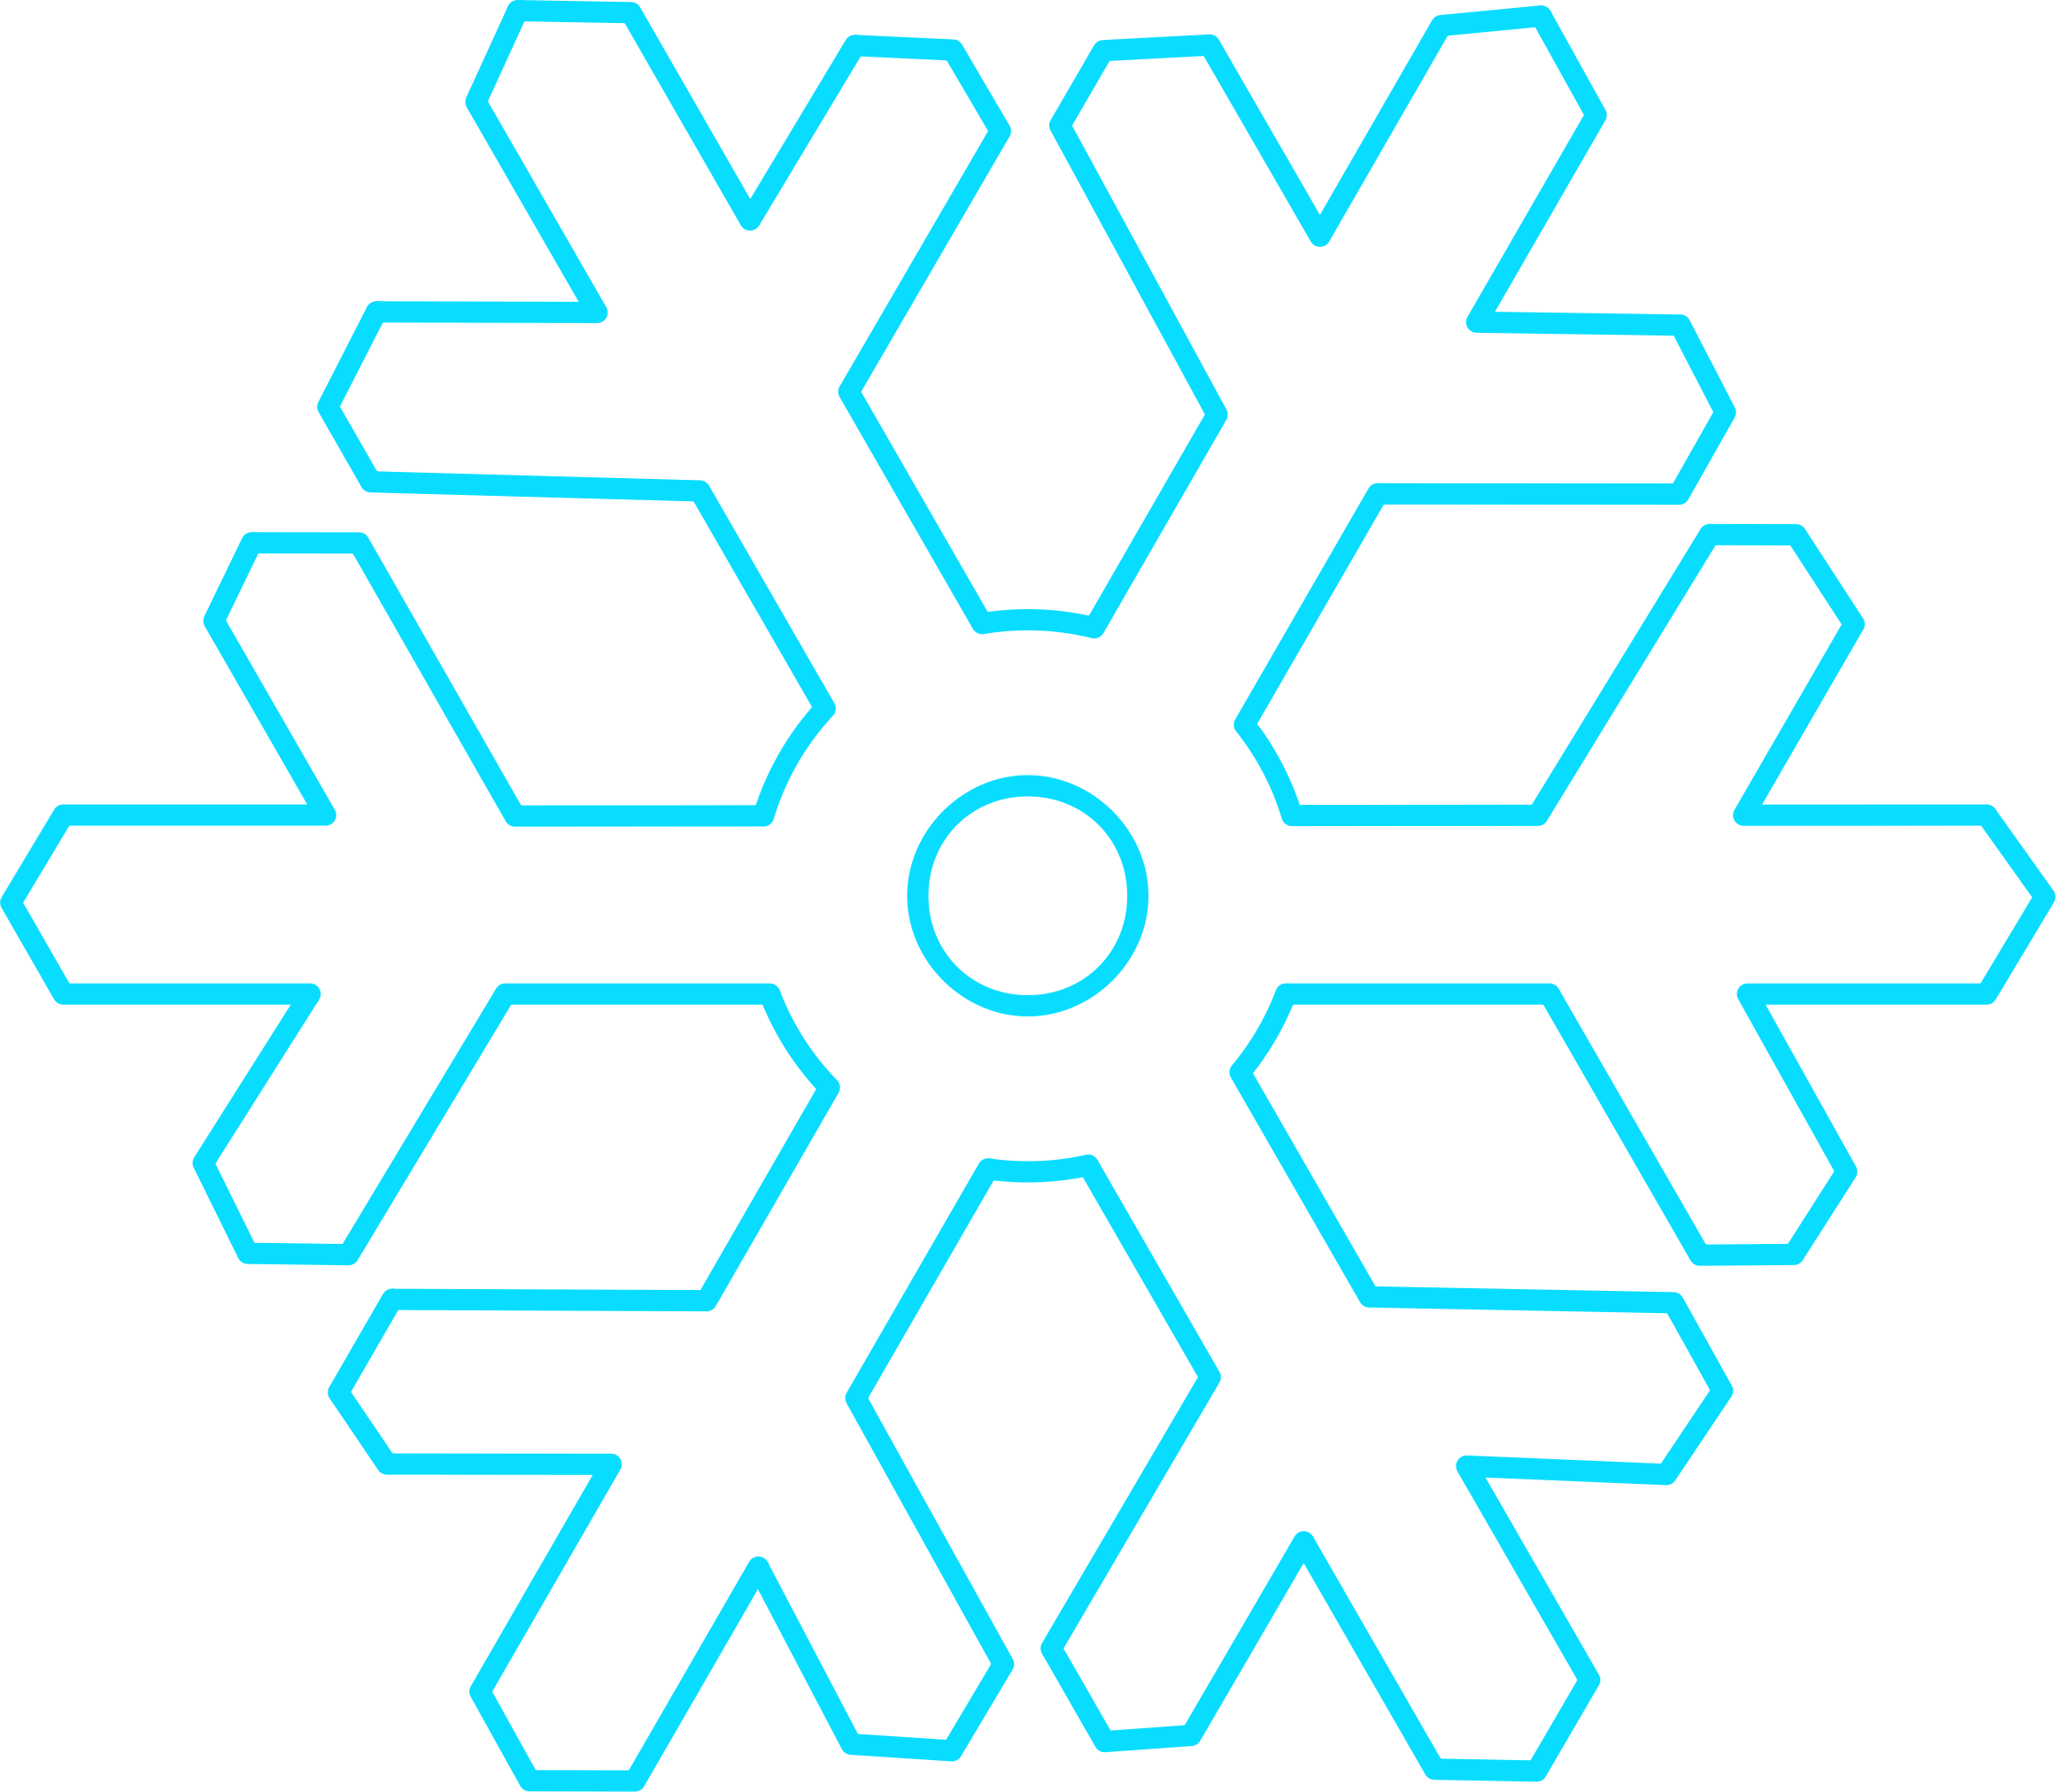 White snowflake clipart image transparent stock Clipart - Flat white snowflake with hollow circular center image transparent stock